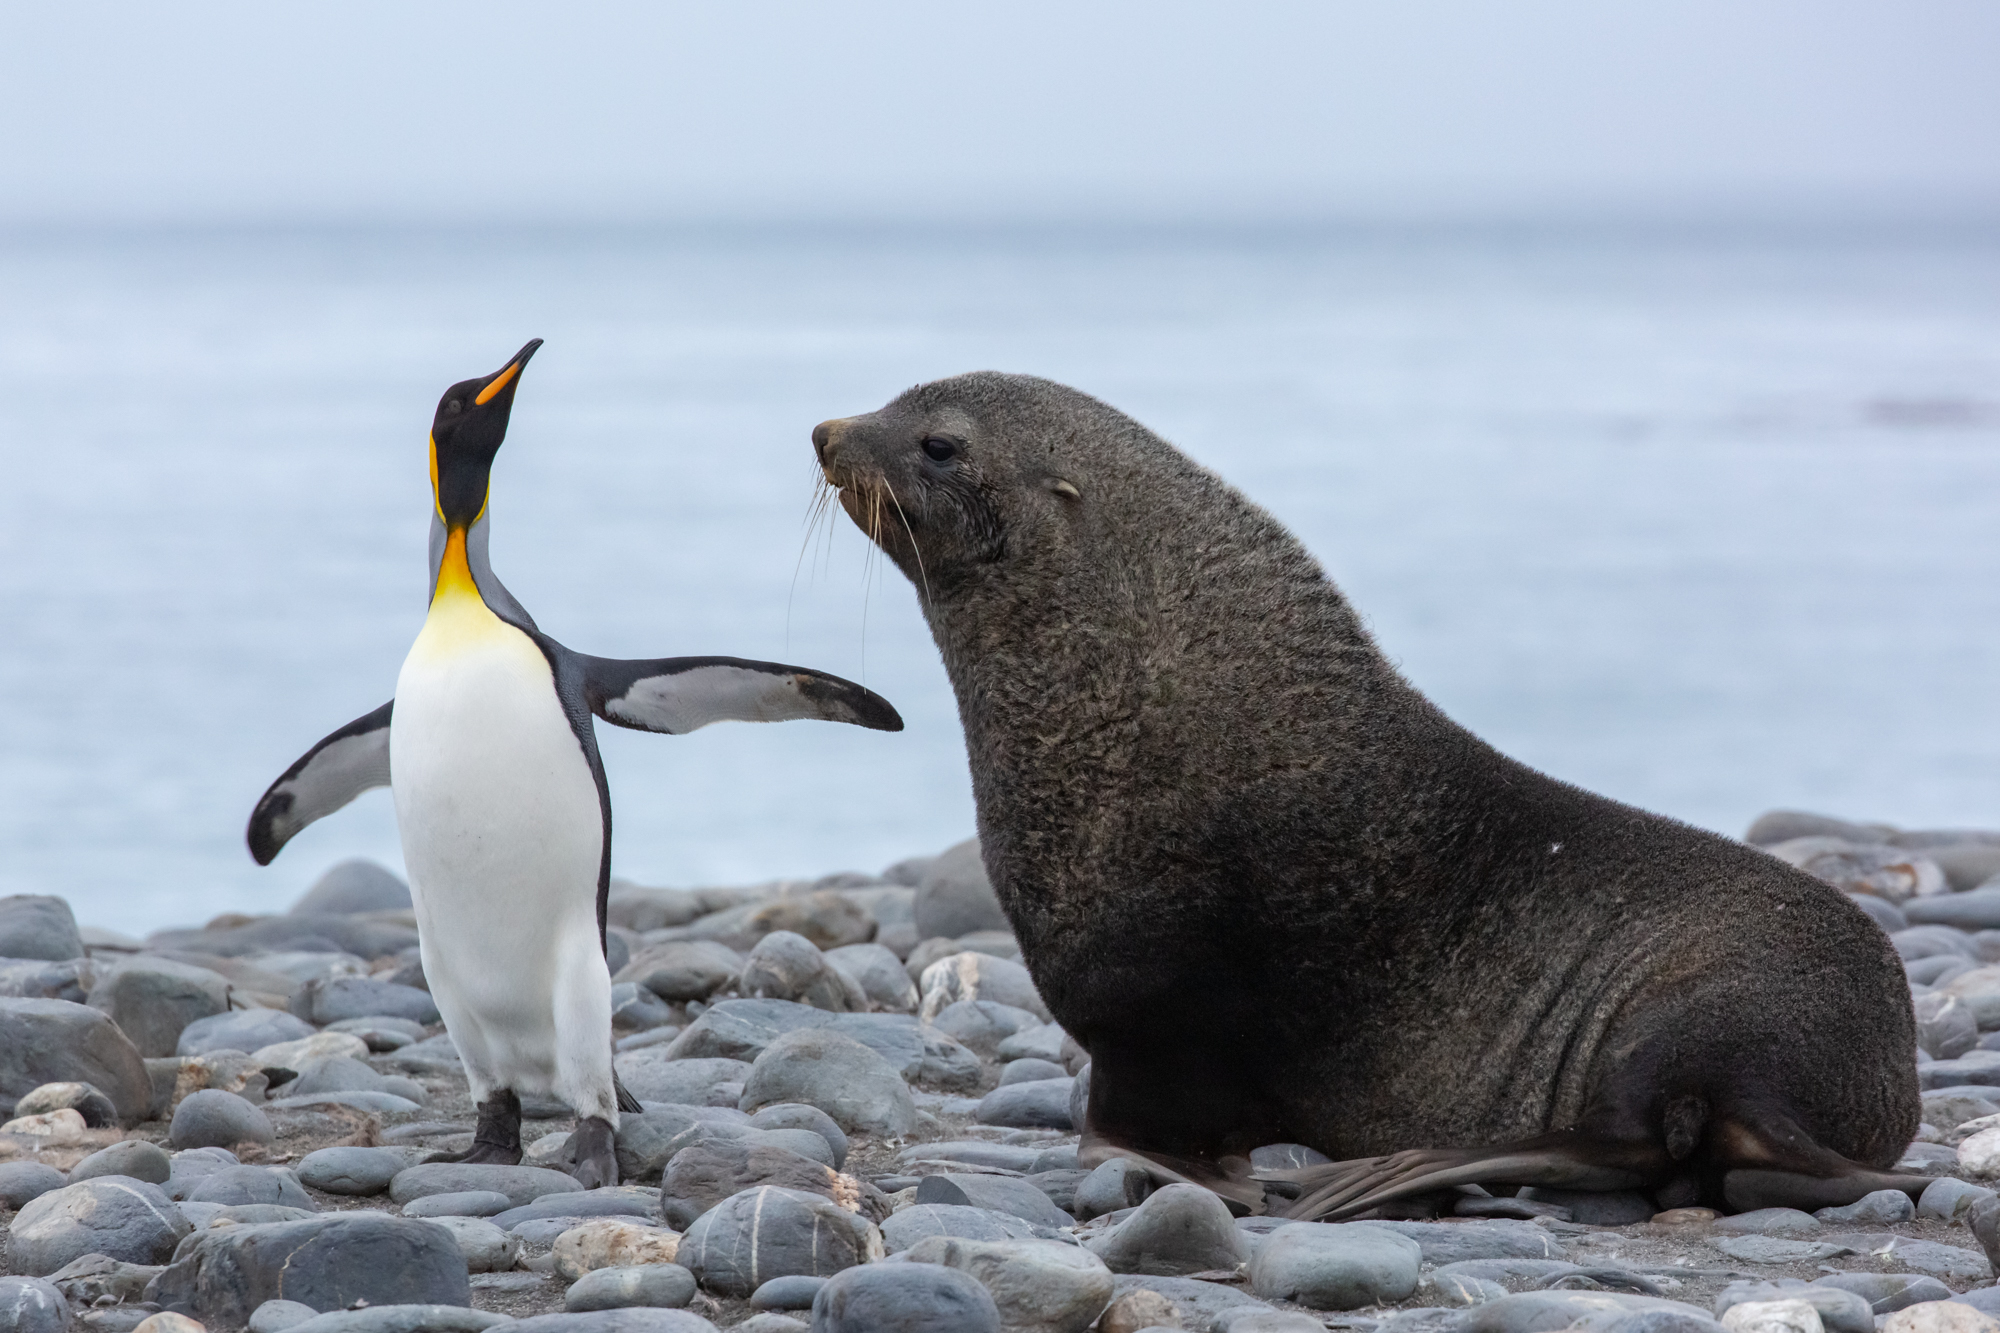 """""""May I have this dance?"""" - A brave King penguin playfully teases an Antarctic fur seal who was slightly less amused by the shocking turn of events that interrupted his afternoon nap... The goofy penguin danced and ran around the fur seal, facing his fears to play with one of the most dangerous animals on the island. Though the seal was reticent and confused at first, he eventually gave in and joined-in on the penguin's game.  Penguins and fur seals are very different species to say the least, but they have grown tolerant of one another as they both rely on South Georgia's beaches as their home - though they occasionally like to mess with one another..."""